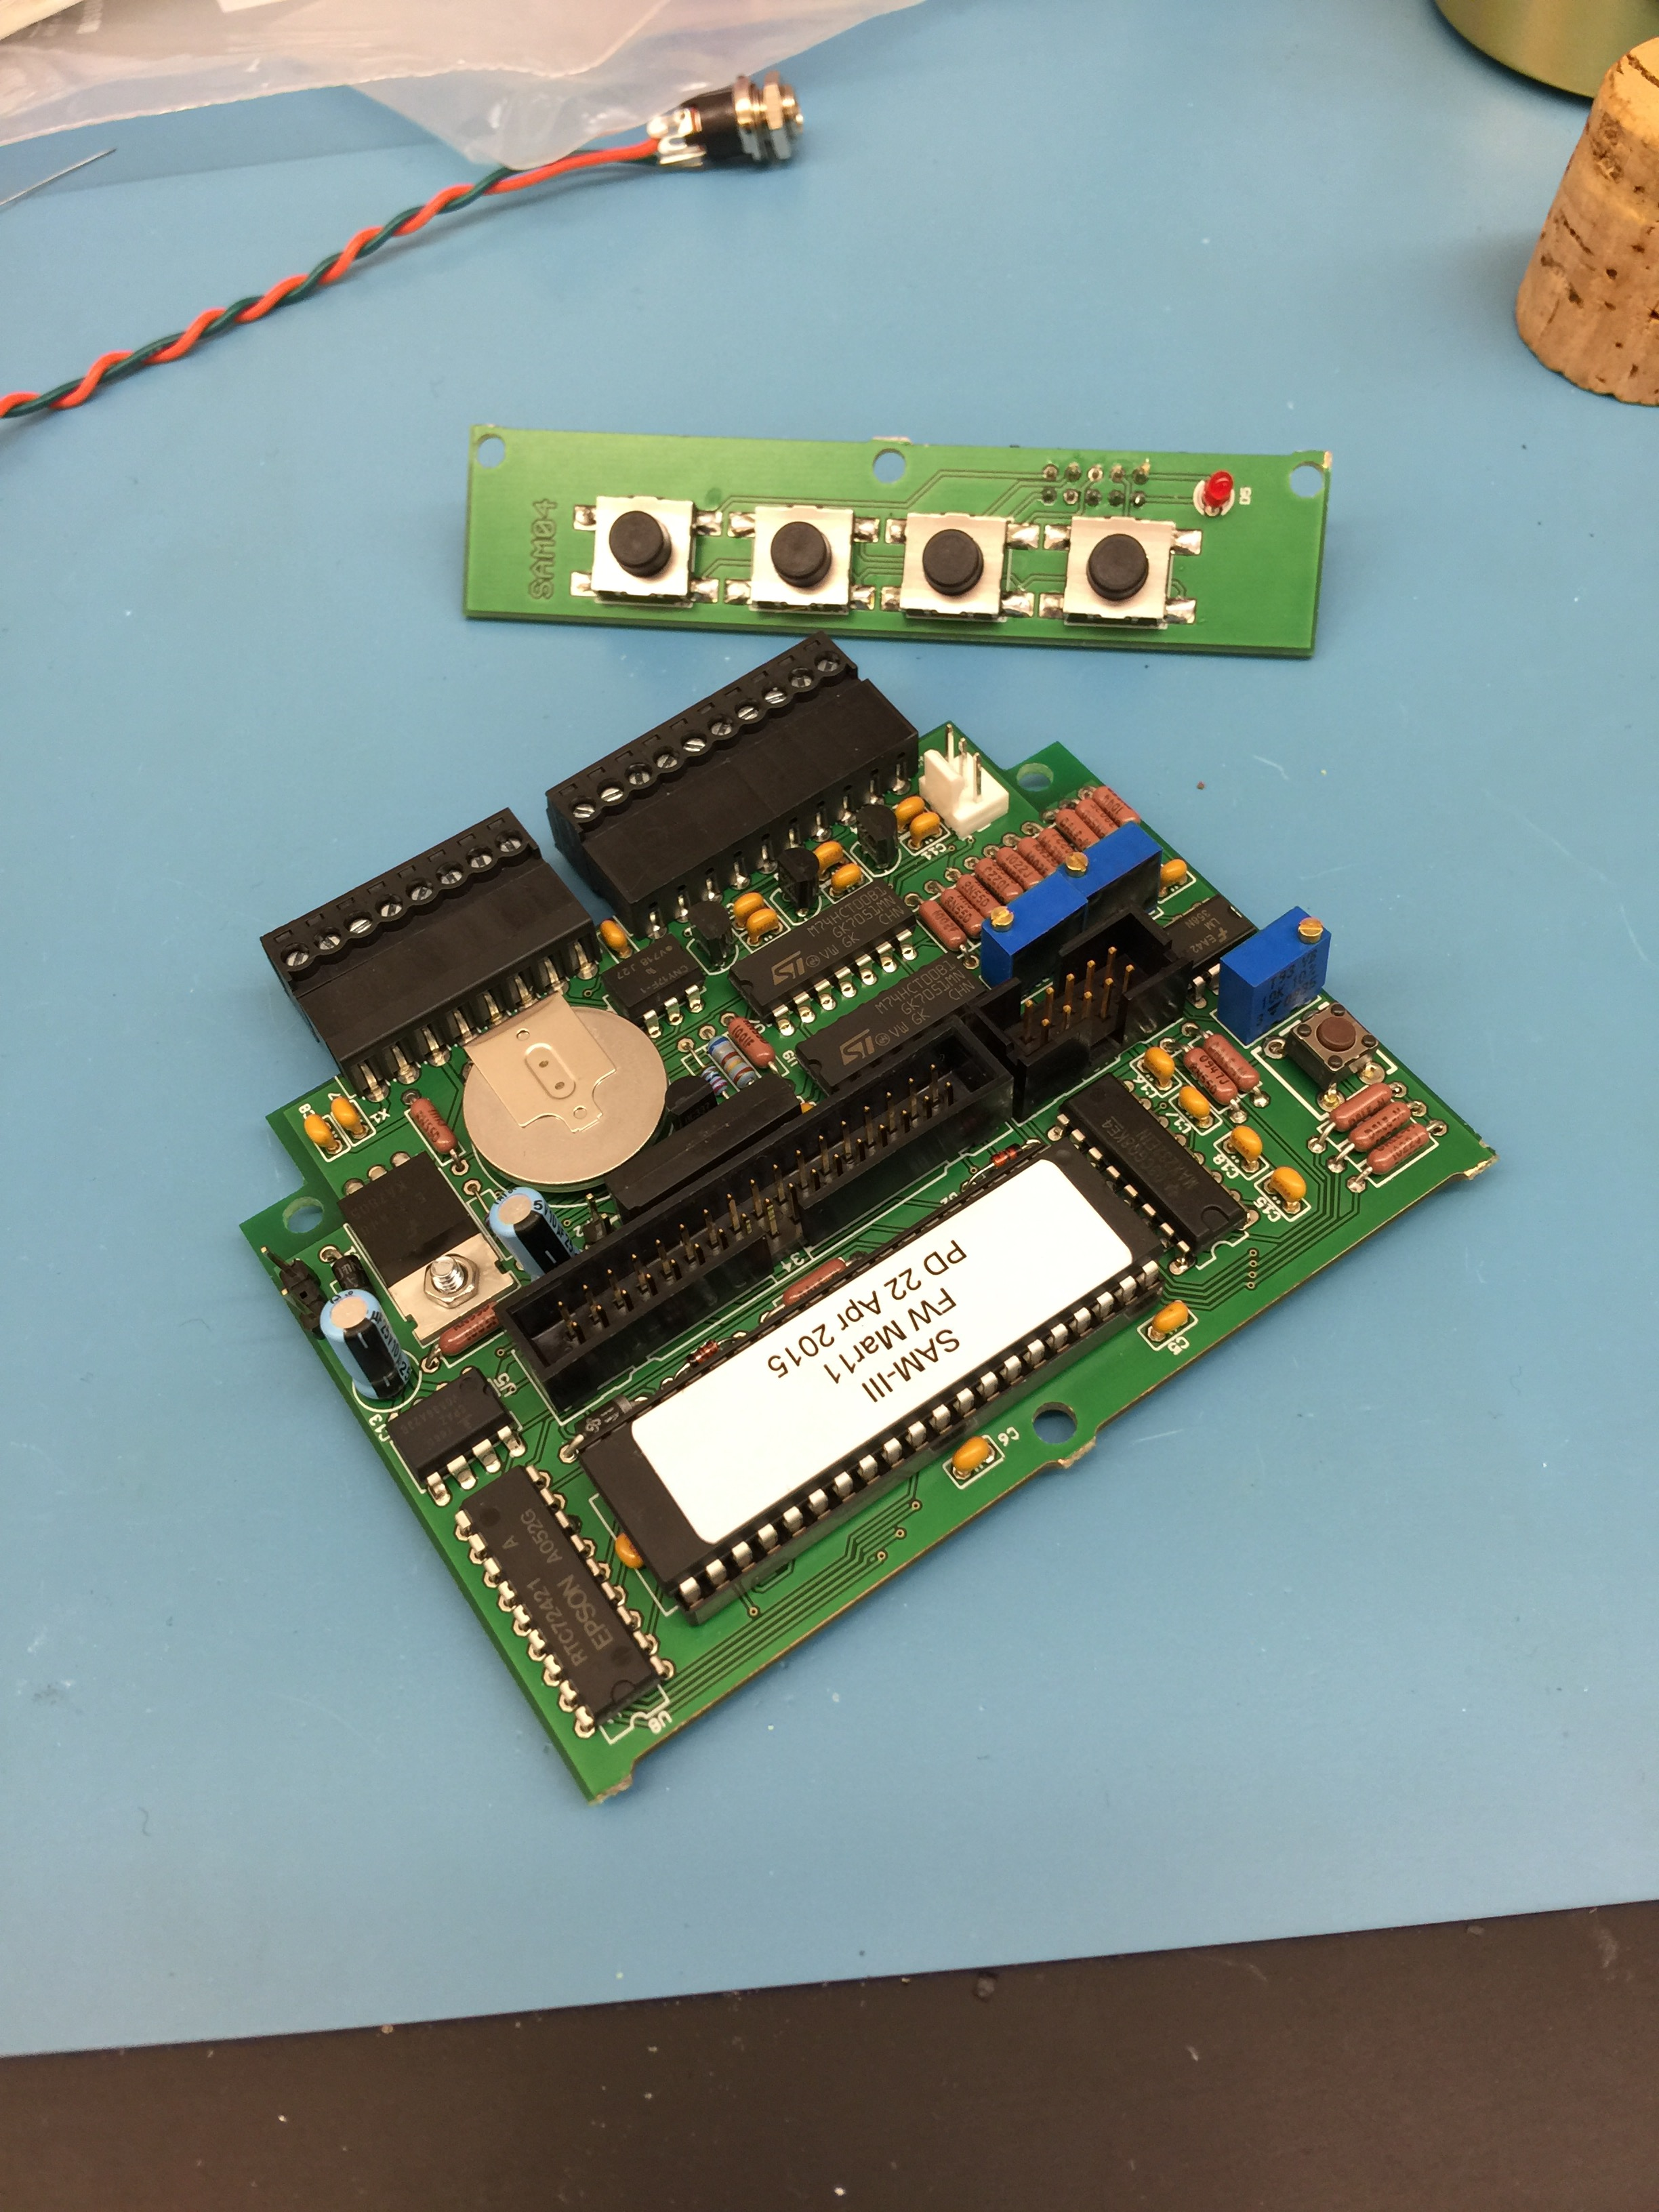 The completed main board